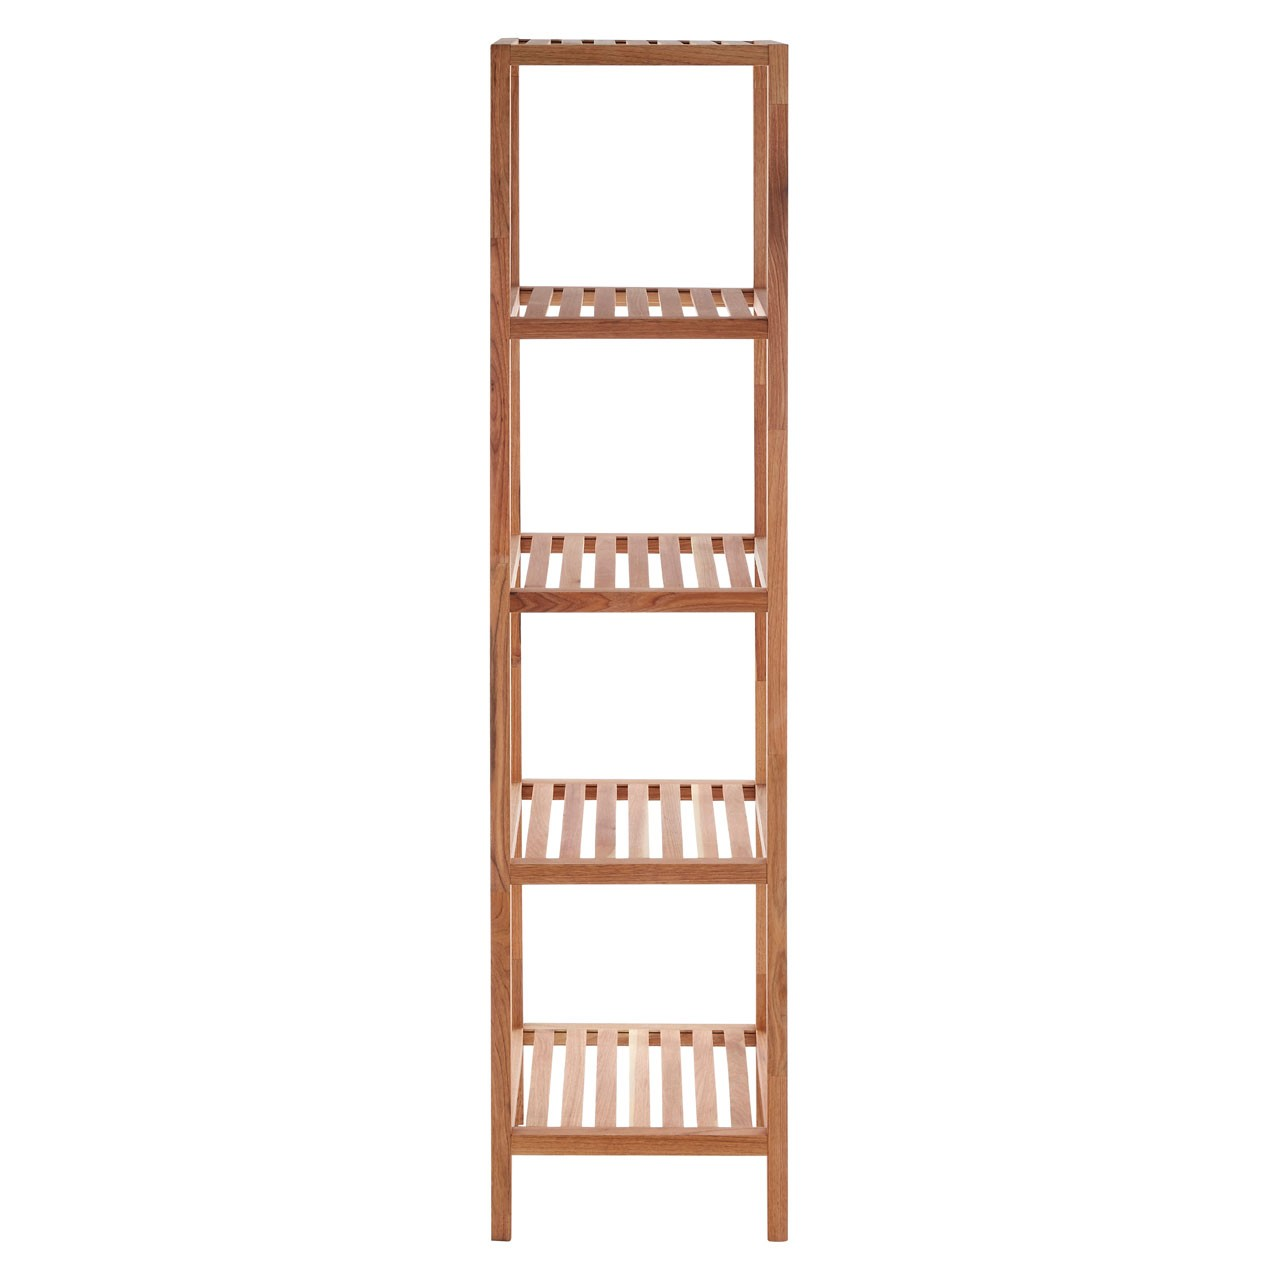 5 Tier Walnut Wood Bathroom Shelf Unit